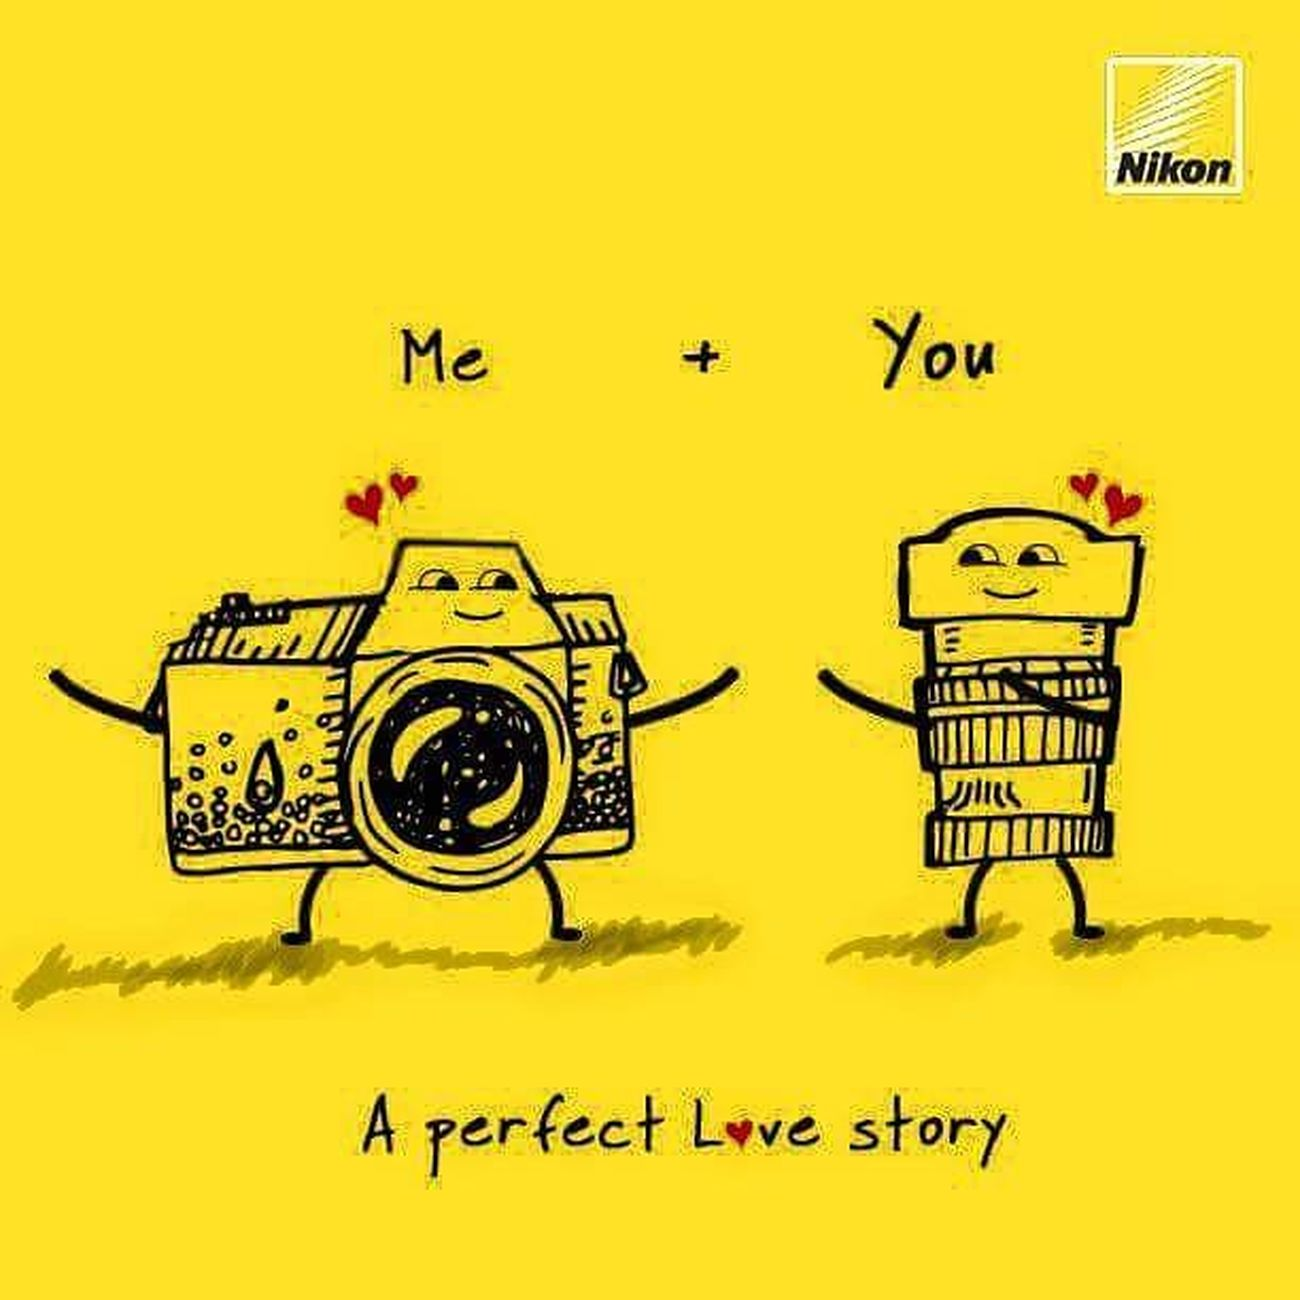 I want a relationship like this💓💗 Nikon💗 made for each other😘😍😍